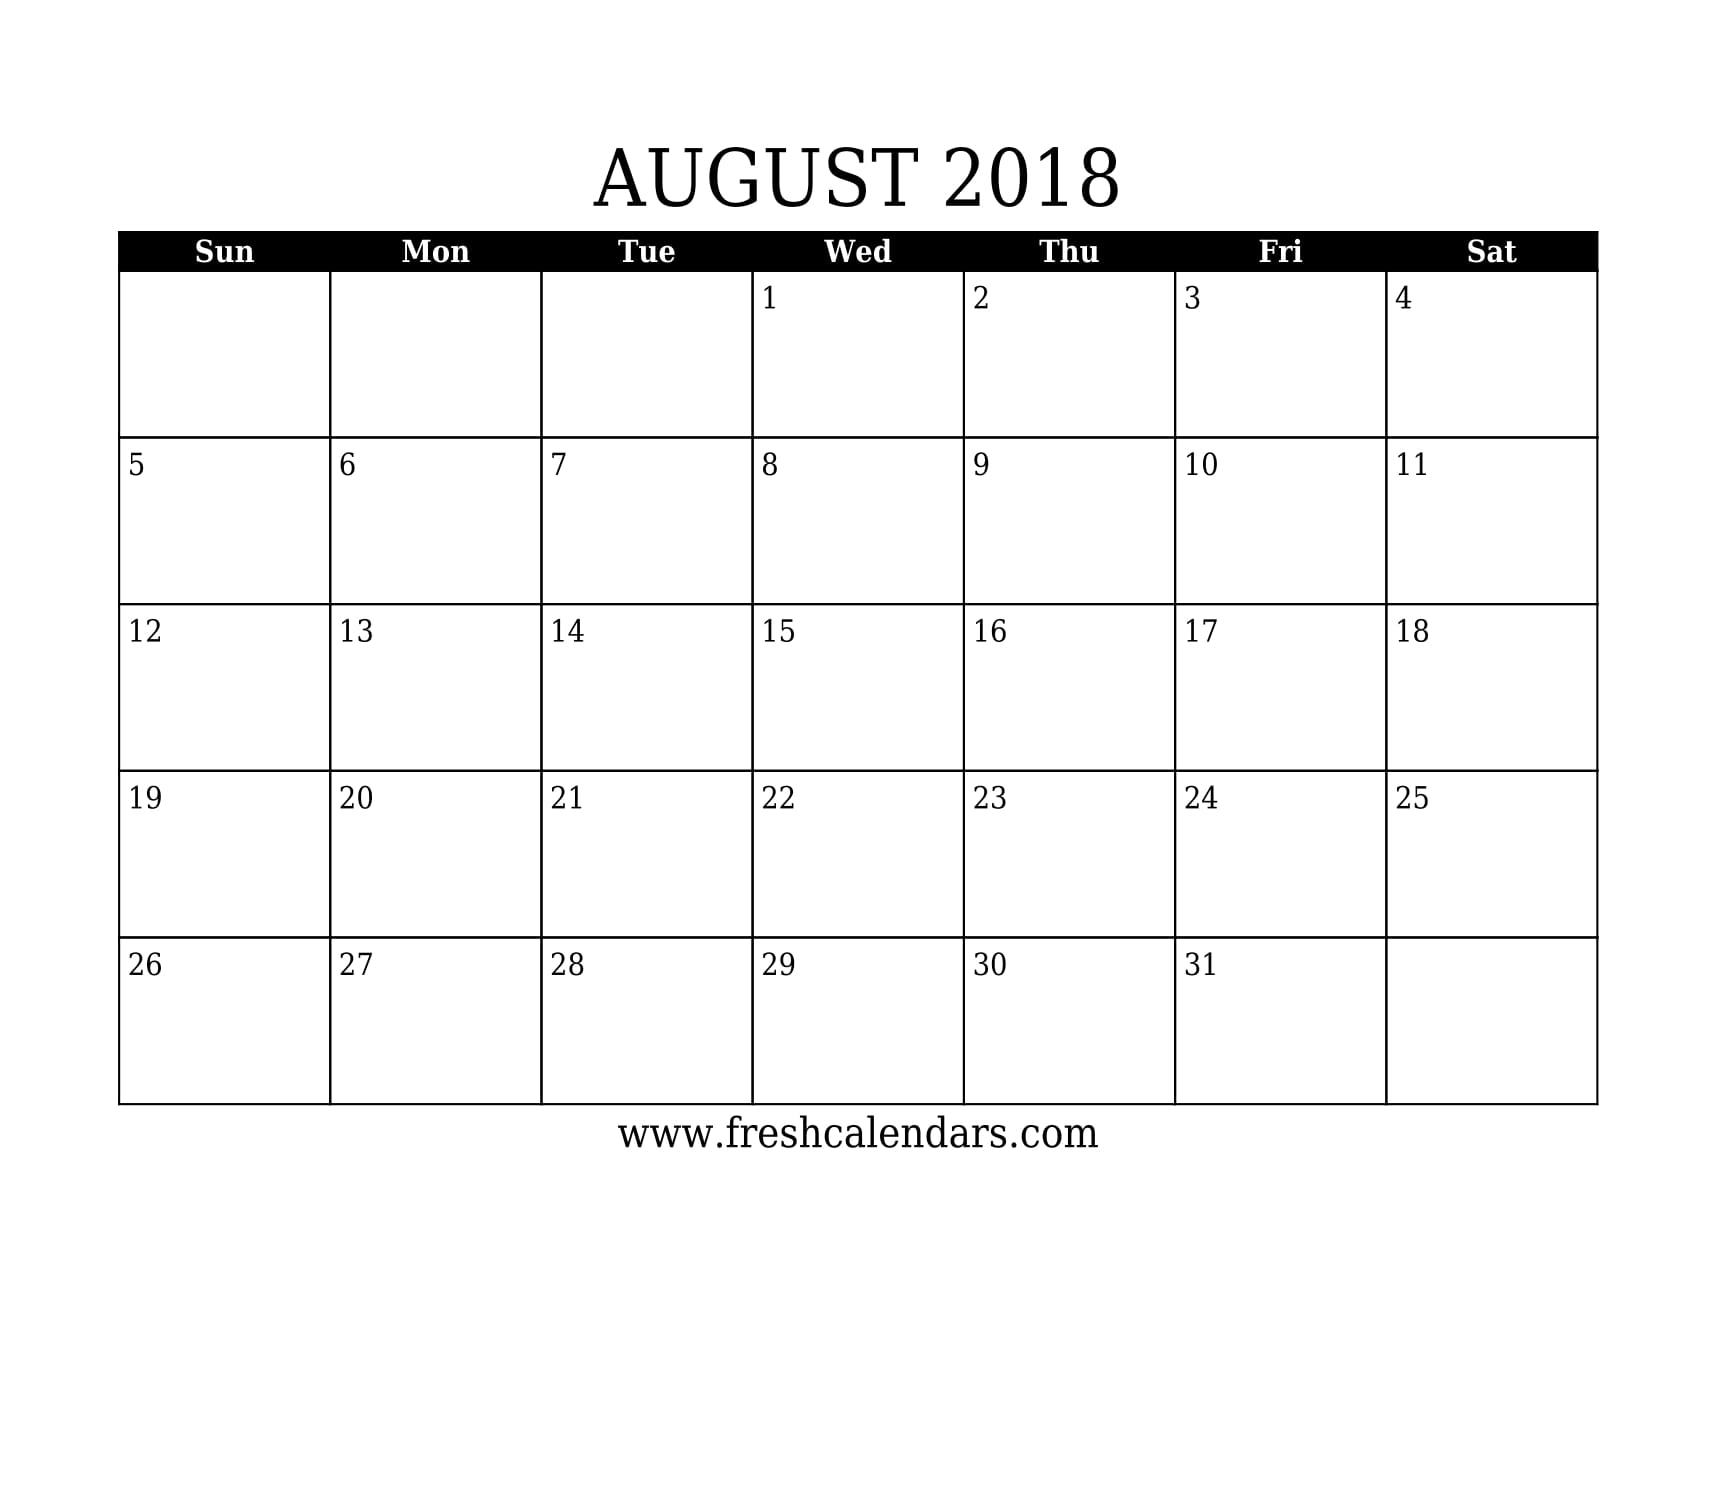 graphic about Printable Monthly Calendar August named August 2018 Calendar Printable - Contemporary Calendars